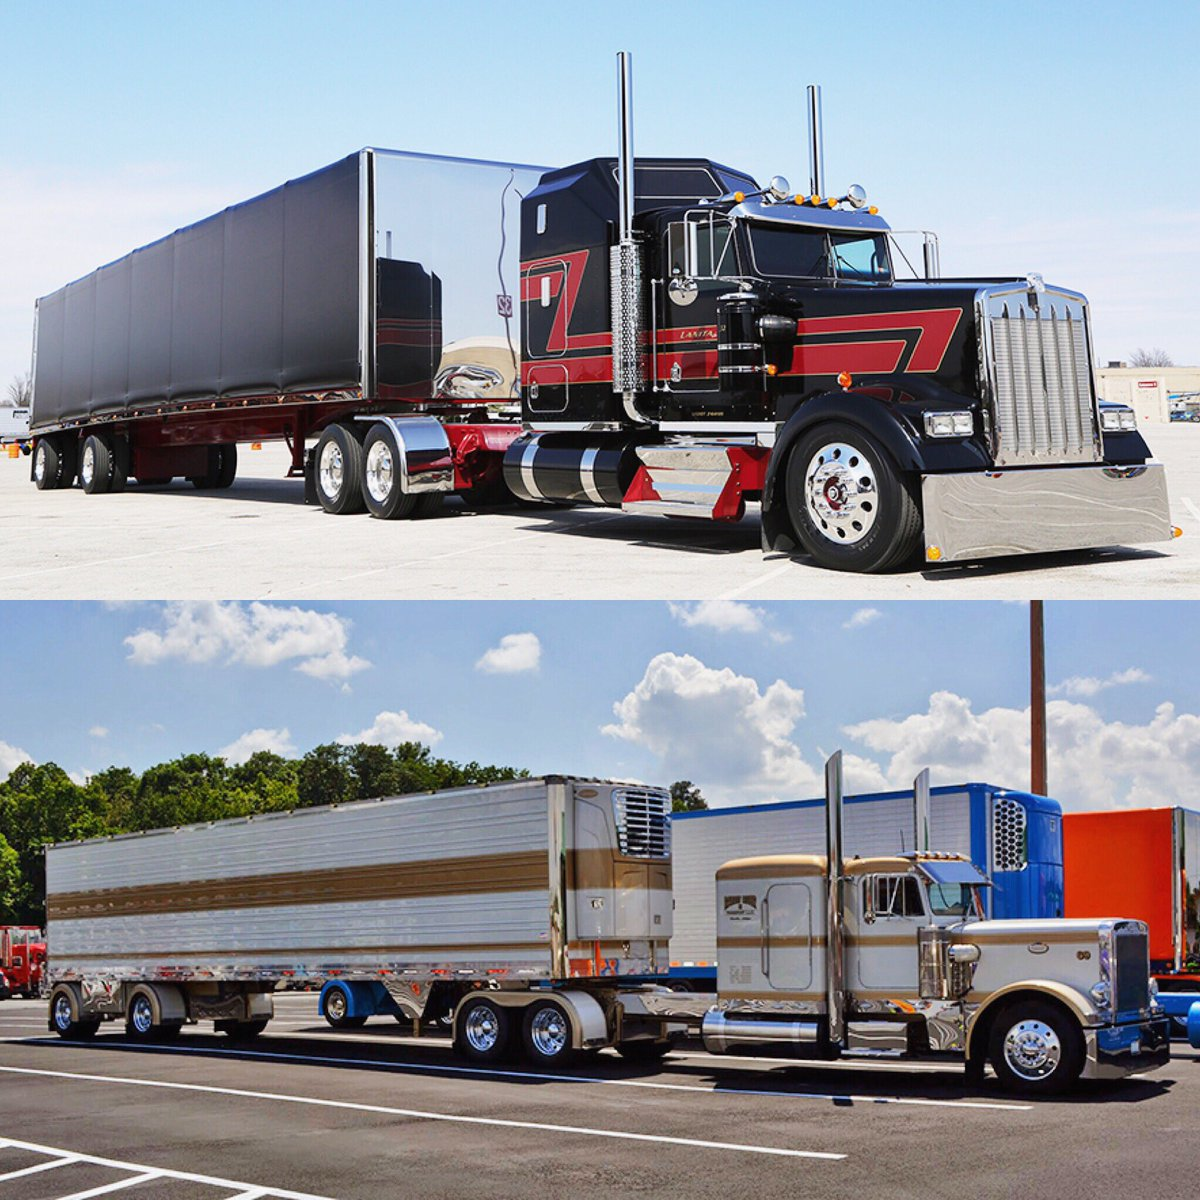 Jack S Chrome Shop On Twitter Battle Of The Big Rigs Is Back This Time We Want To Know Which Full Build Is Your Favorite The Red And Black Kw Or The Gold